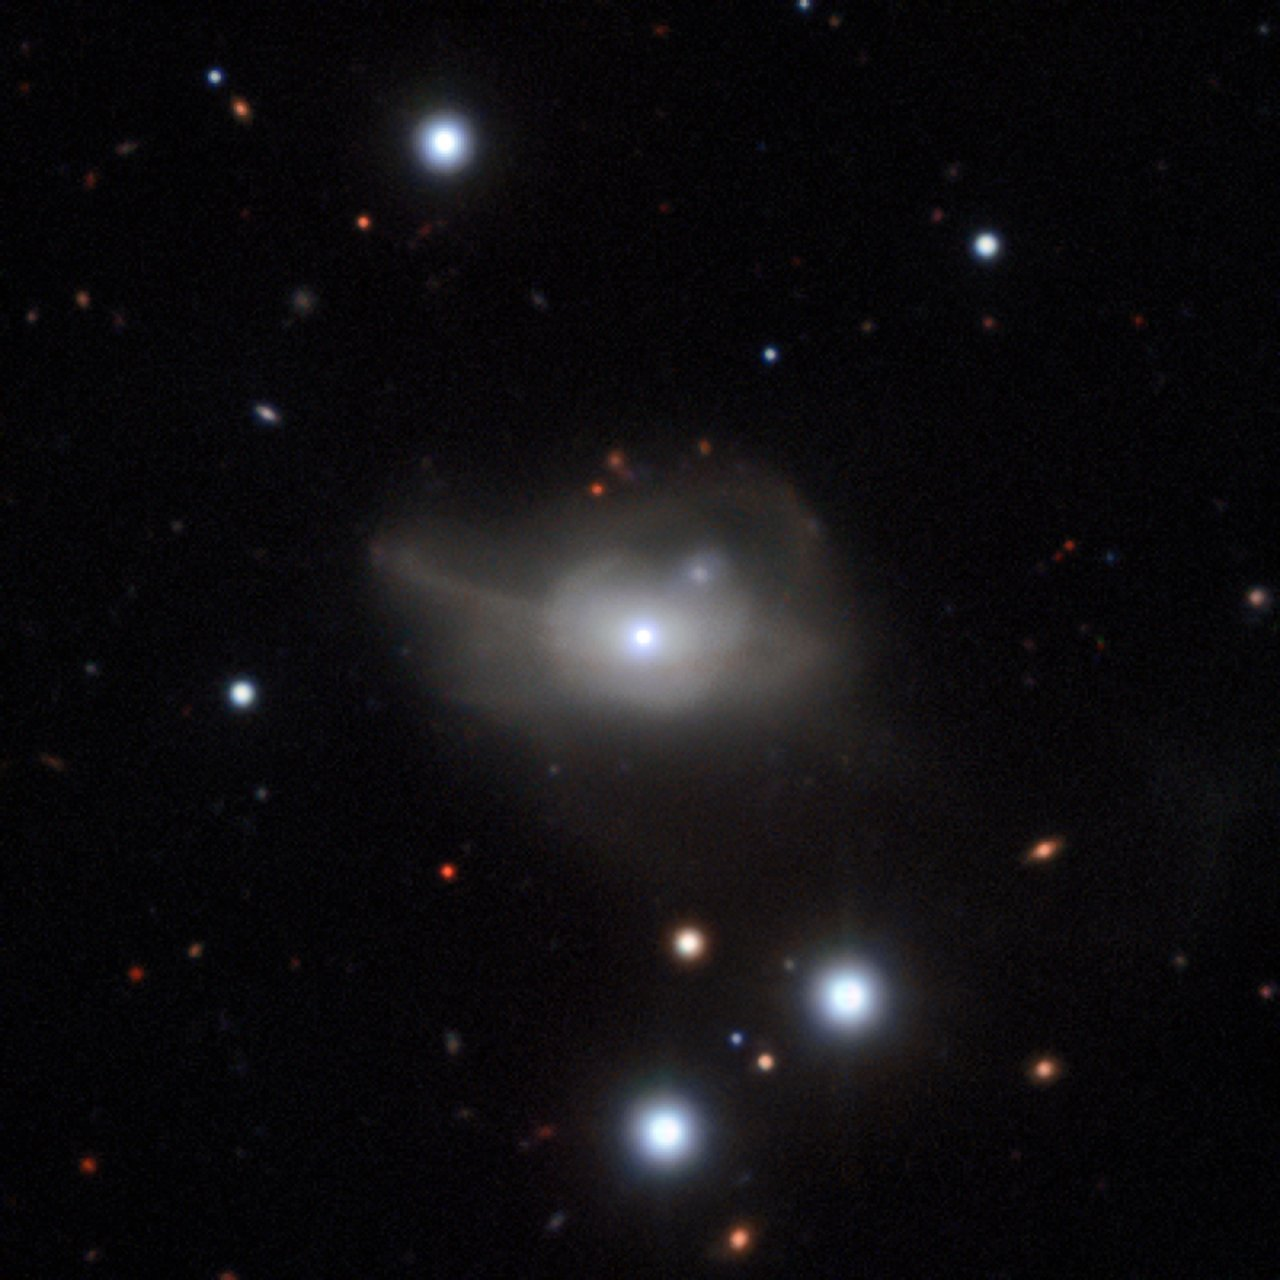 This image from the MUSE instrument on ESO's Very Large Telescope shows the active galaxy Markarian 1018, which has a supermassive black hole at its core. The faint loops of light around the galaxy are a result of its interaction and merger with another galaxy in the recent past. – Image Credit: ESO/CARS survey